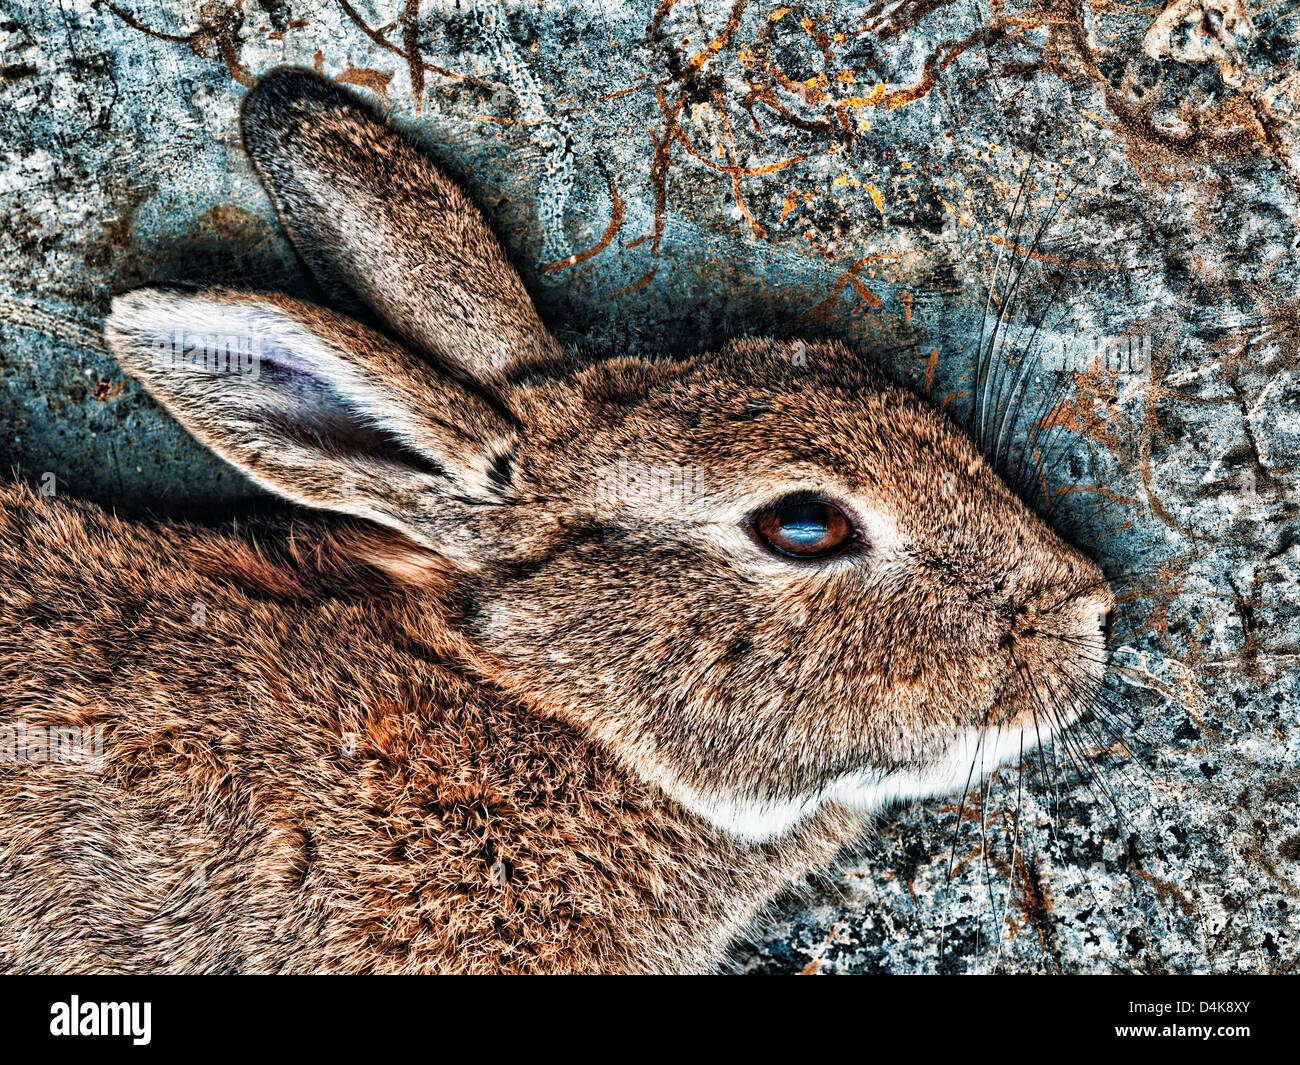 Close up of rabbit's face Photo Stock